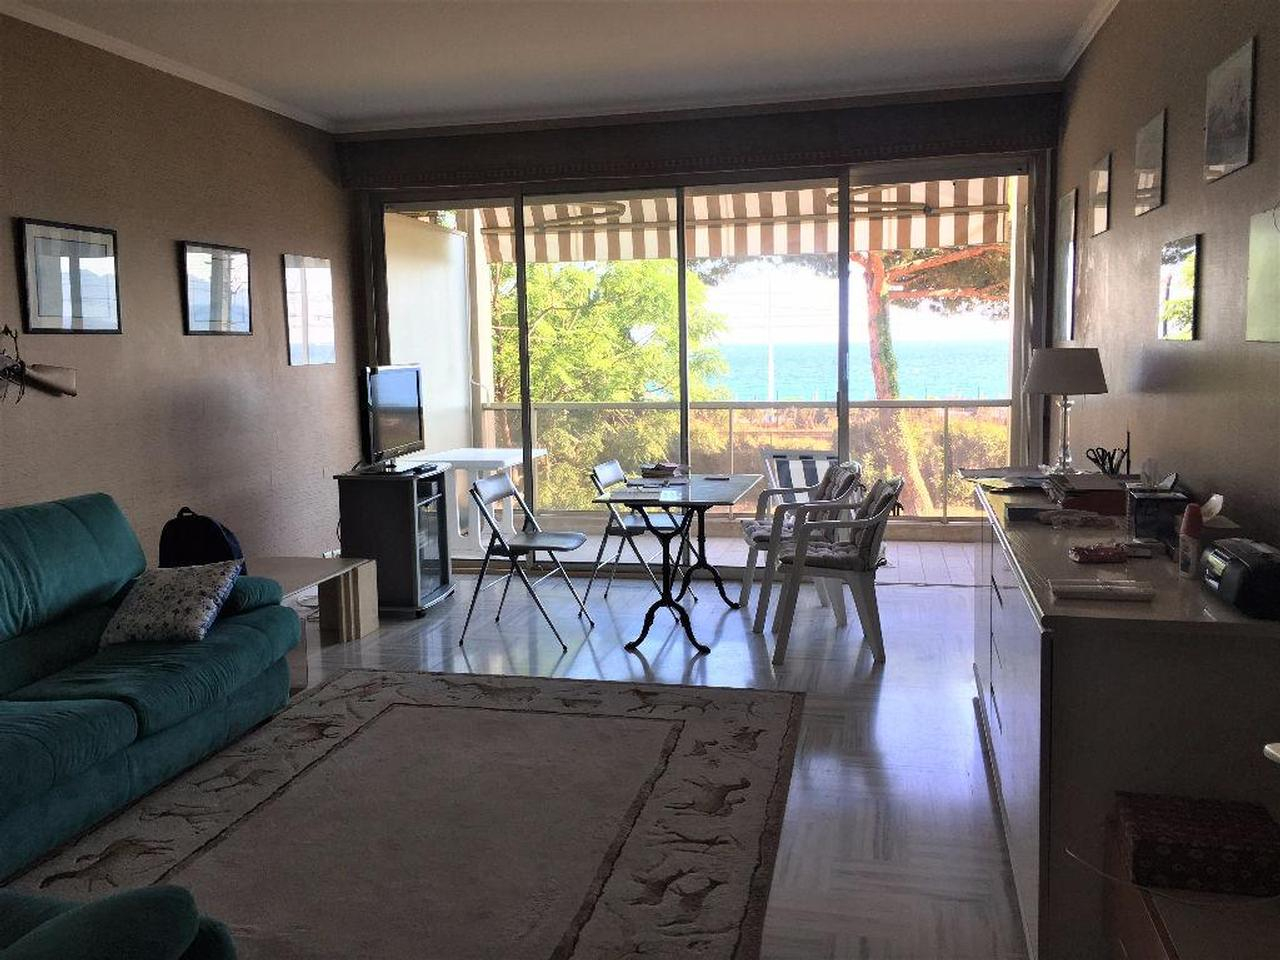 Immobilier nice vue mer appartement cannes cannes face a for Interieur sud cannes